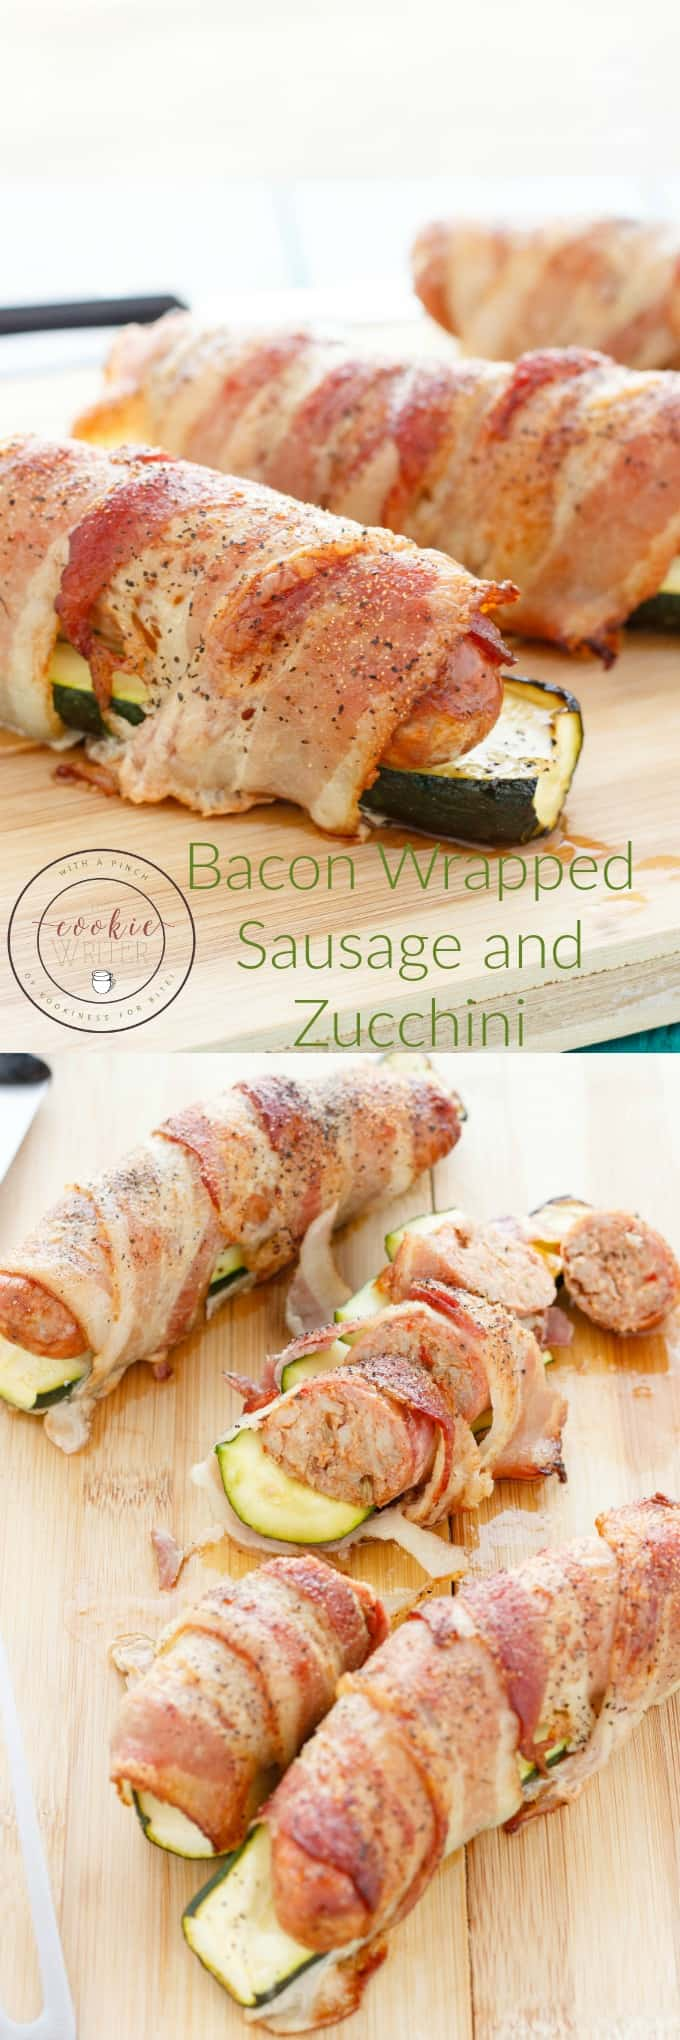 Bacon Wrapped Sausage and Zucchini